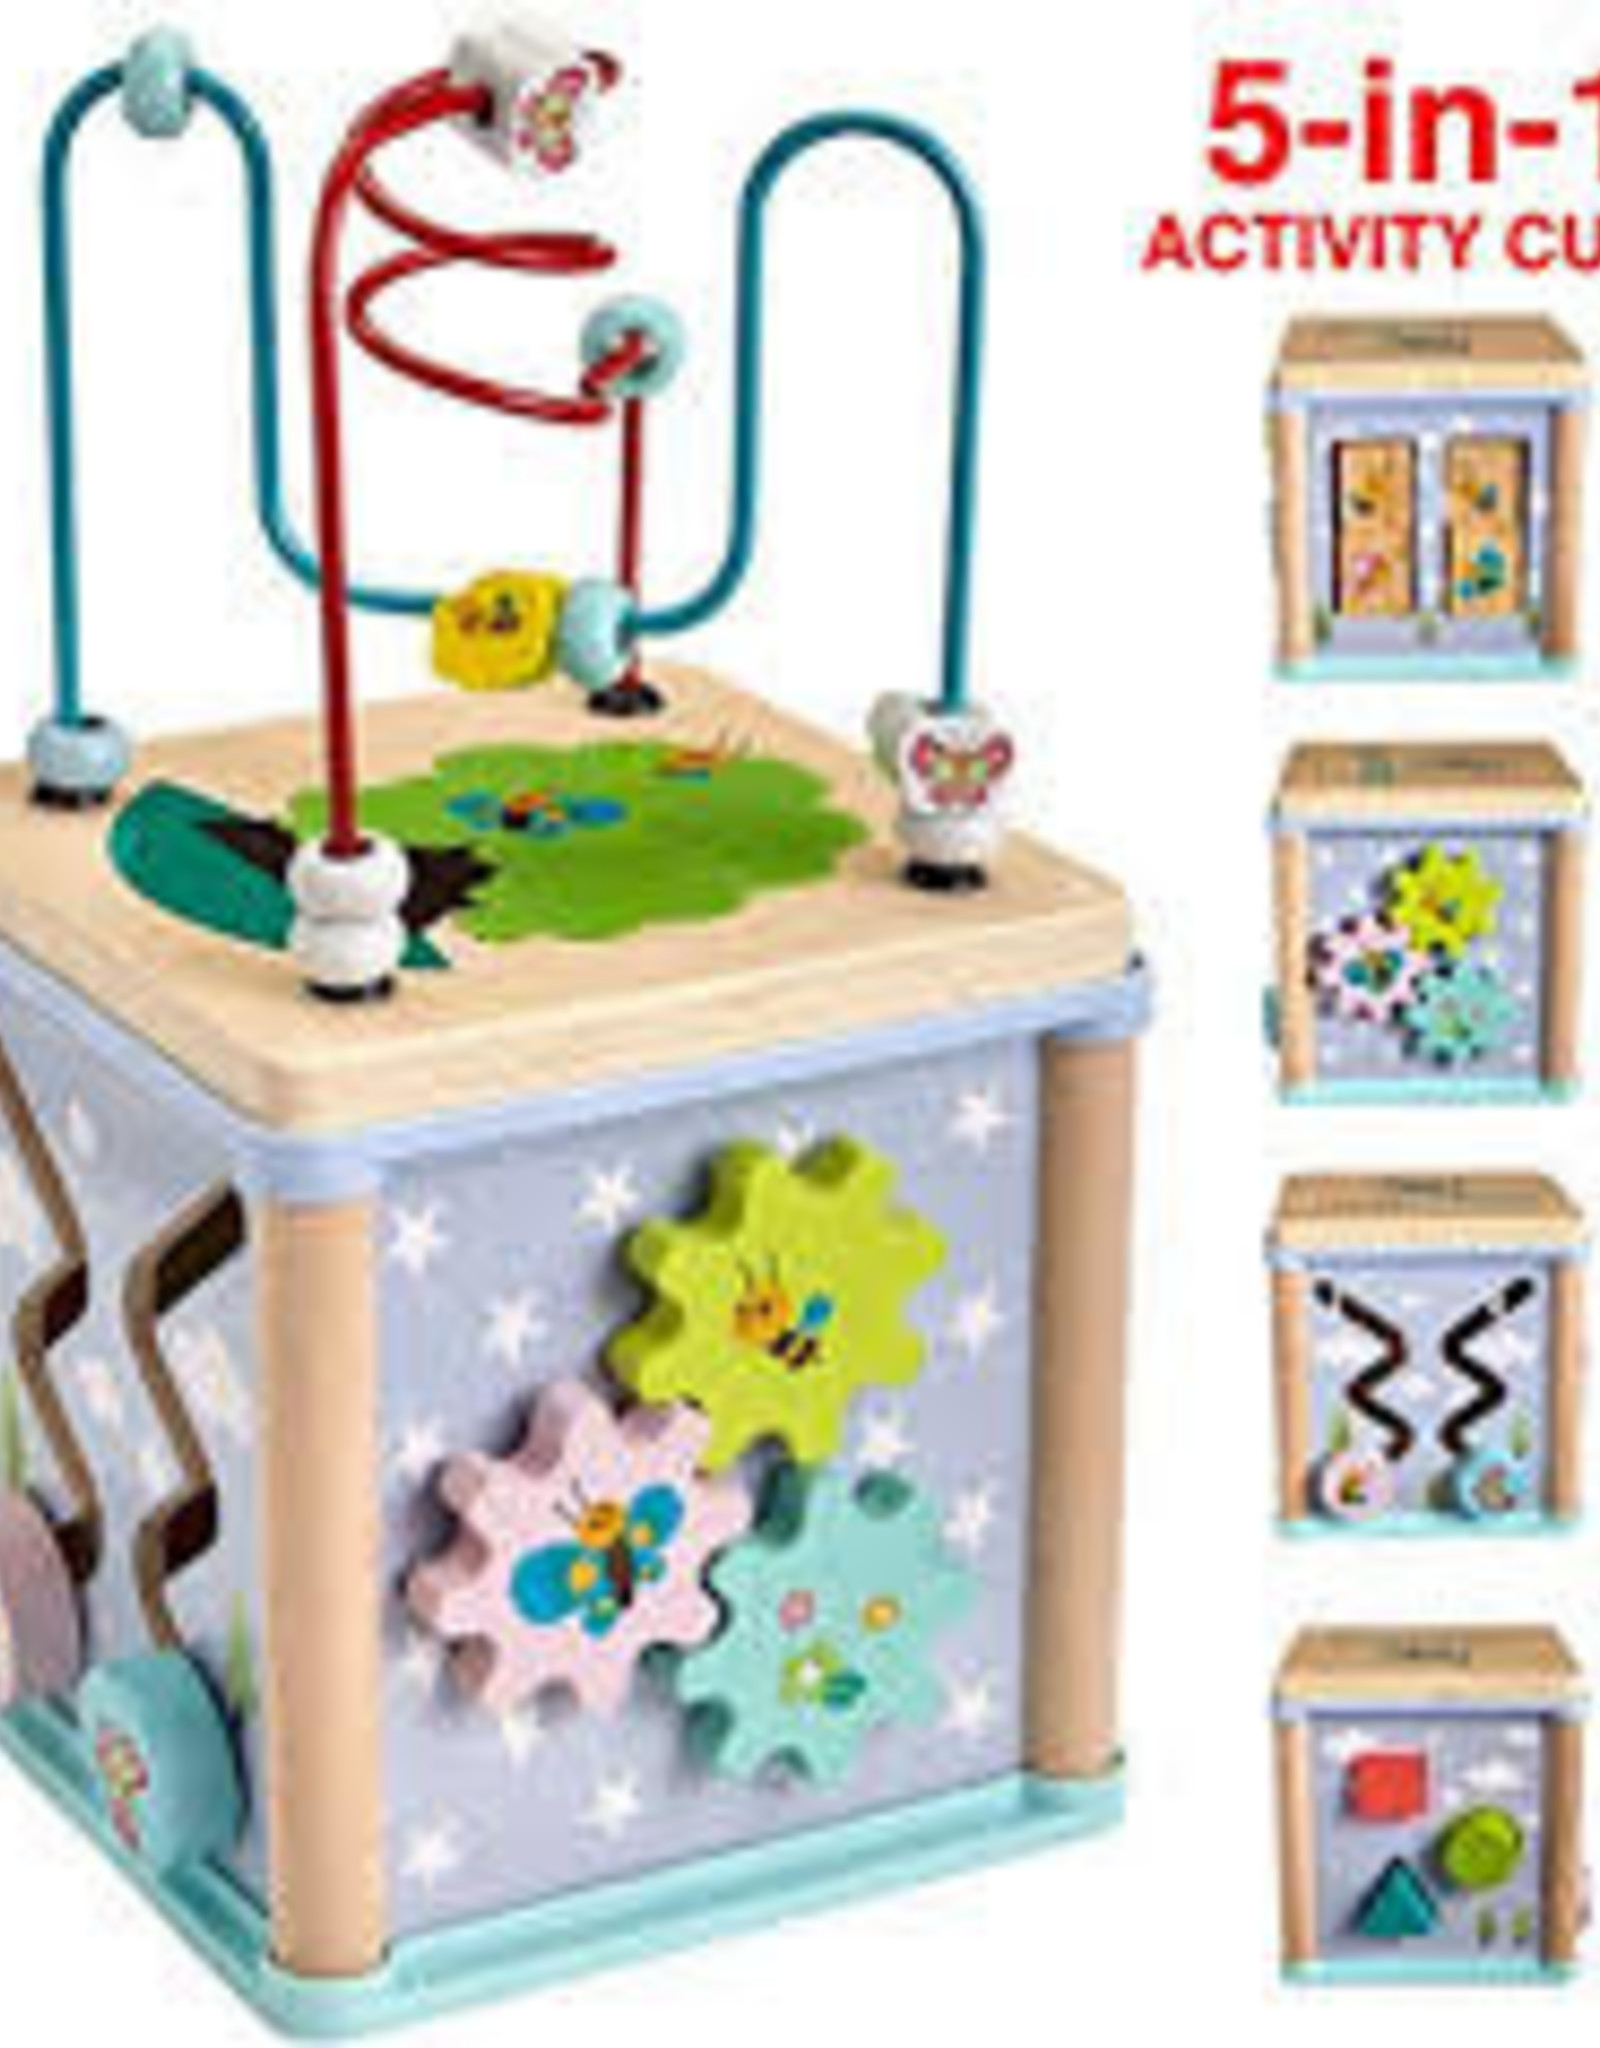 Family Games of America 5 in 1 Activity Cube